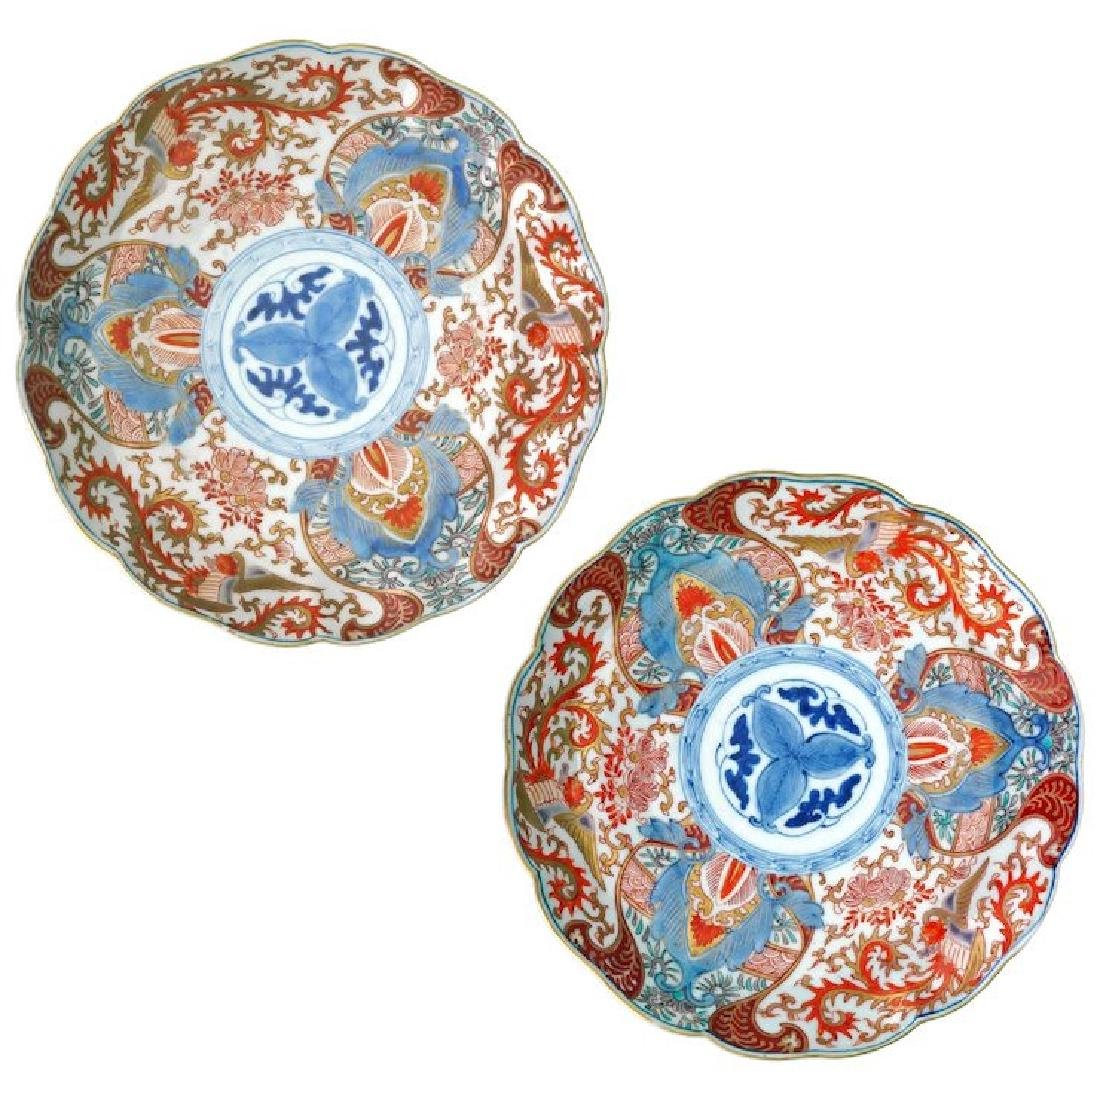 Matched pair of colored Imari porcelain dishes with